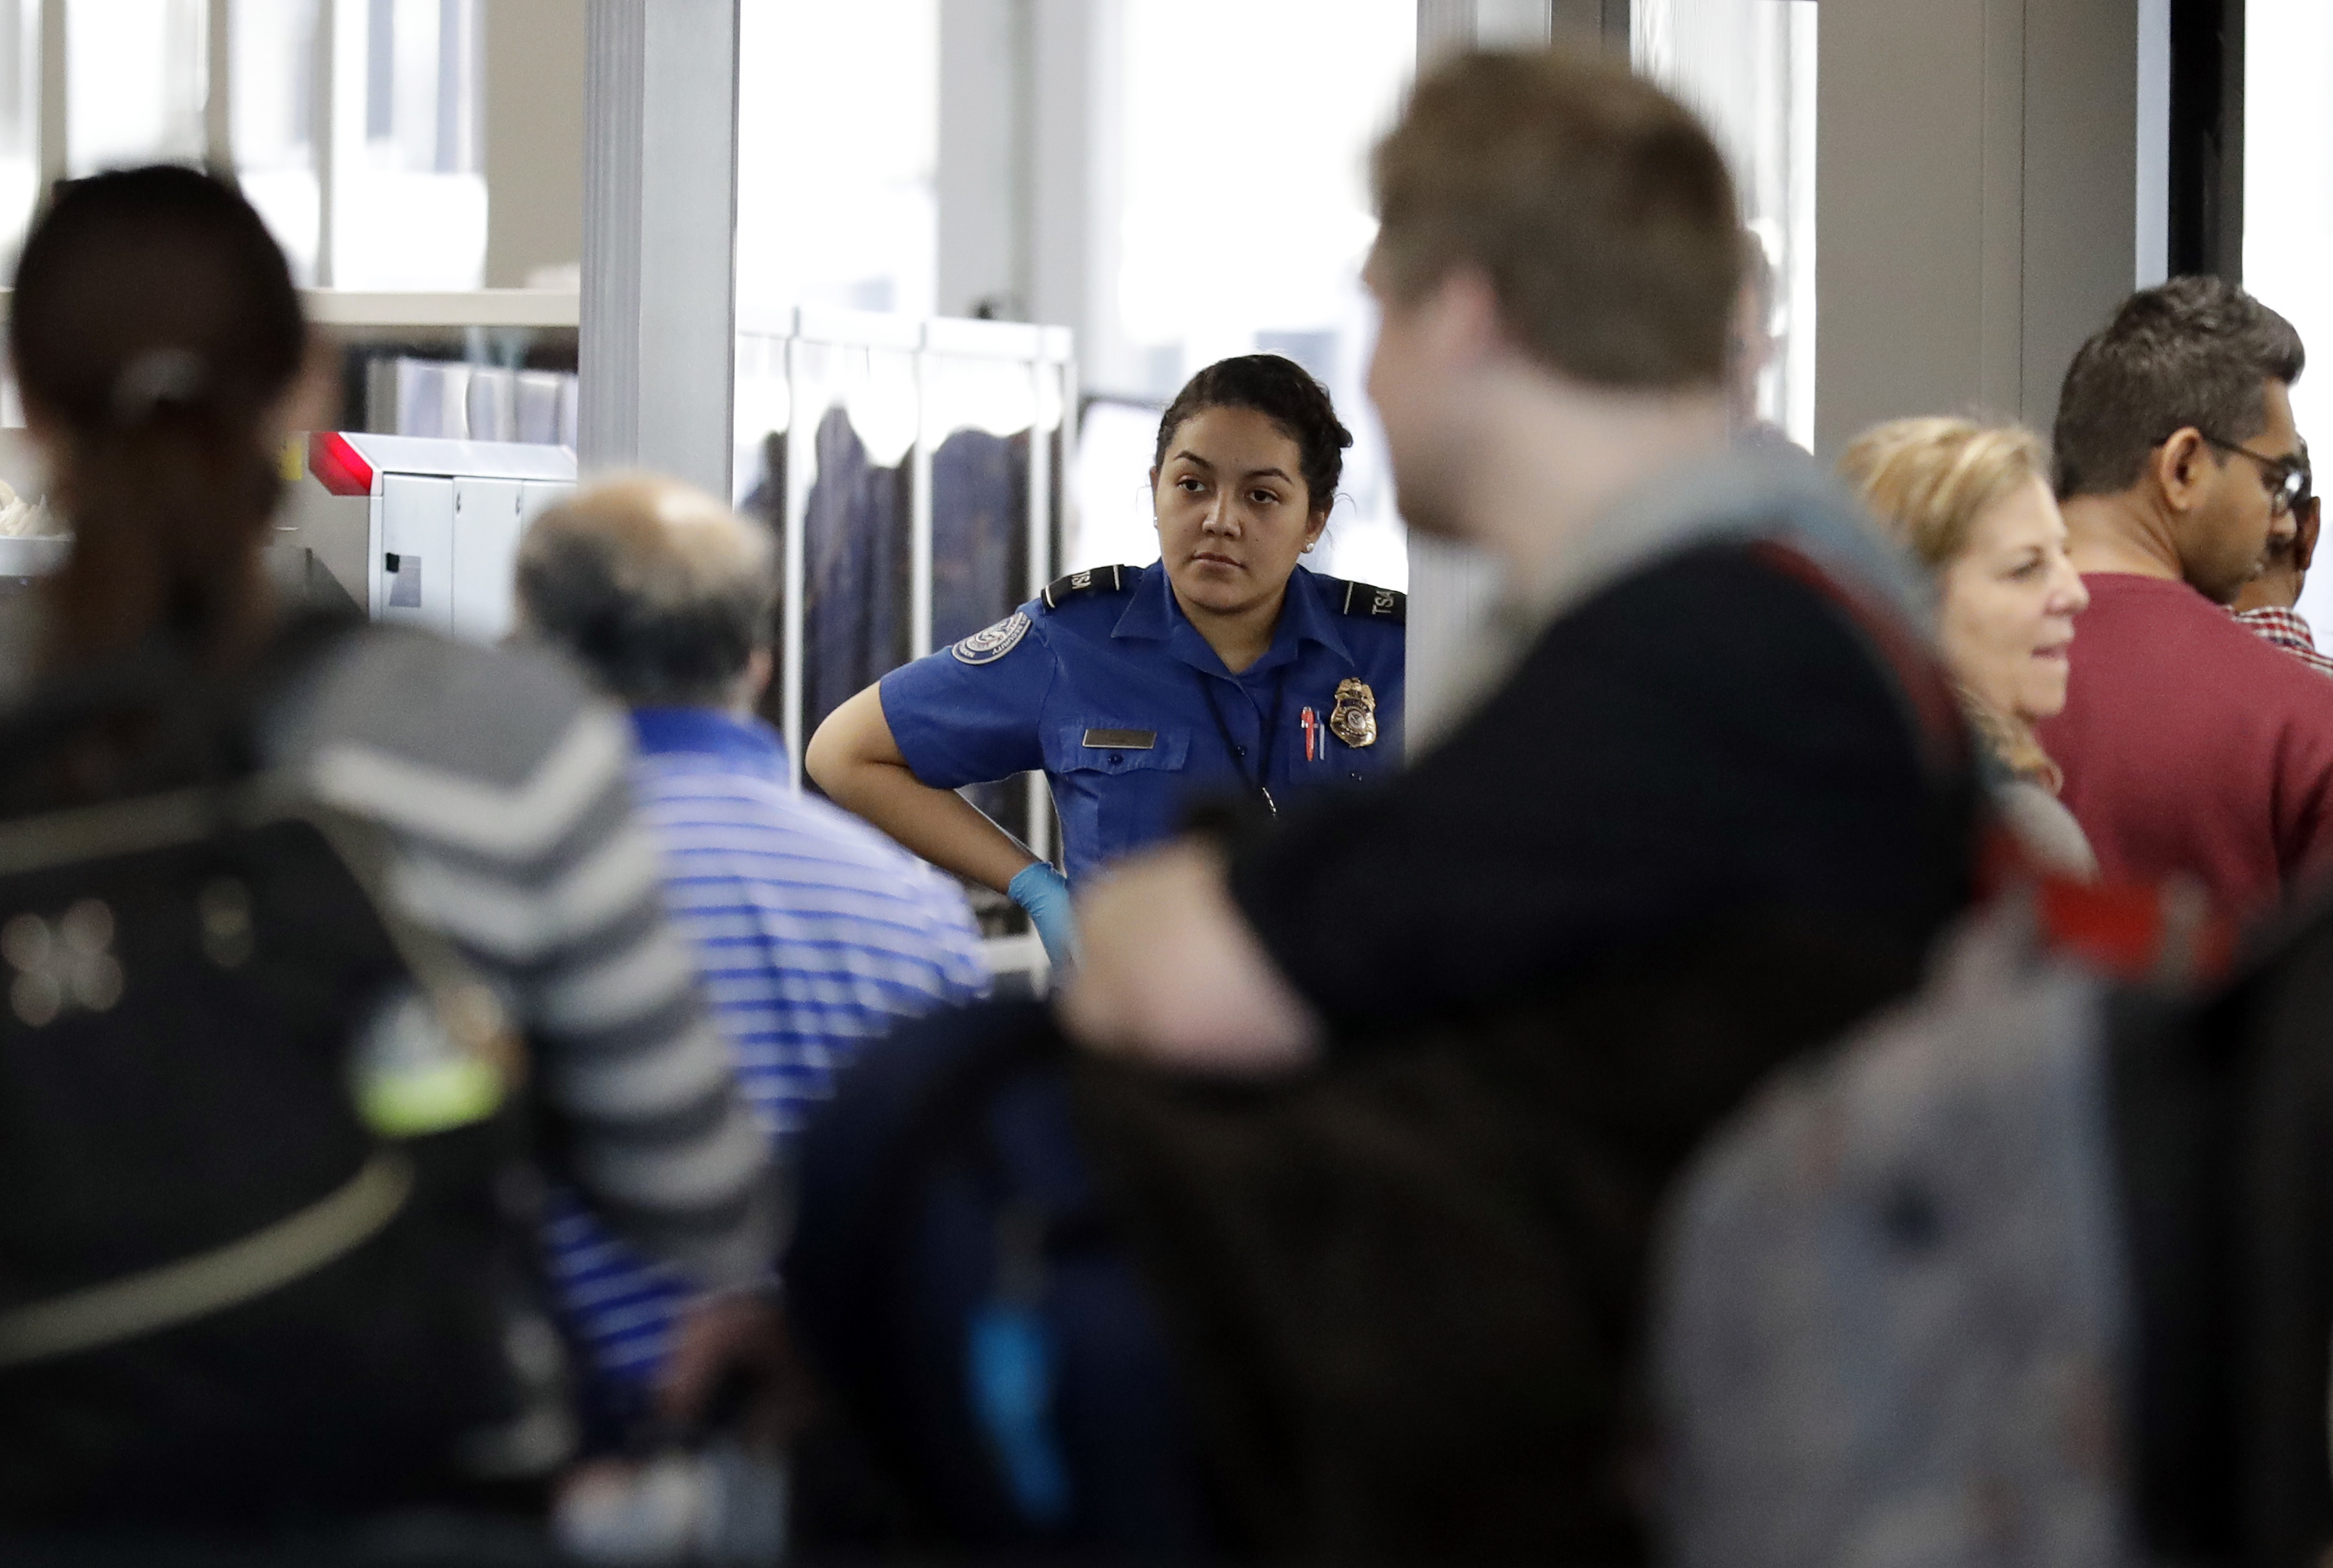 A TSA worker works at O'Hare International Airport in Chicago, Tuesday, Dec. 25, 2018. TSA is working through the holidays without pay. (AP Photo/Nam Y. Huh)